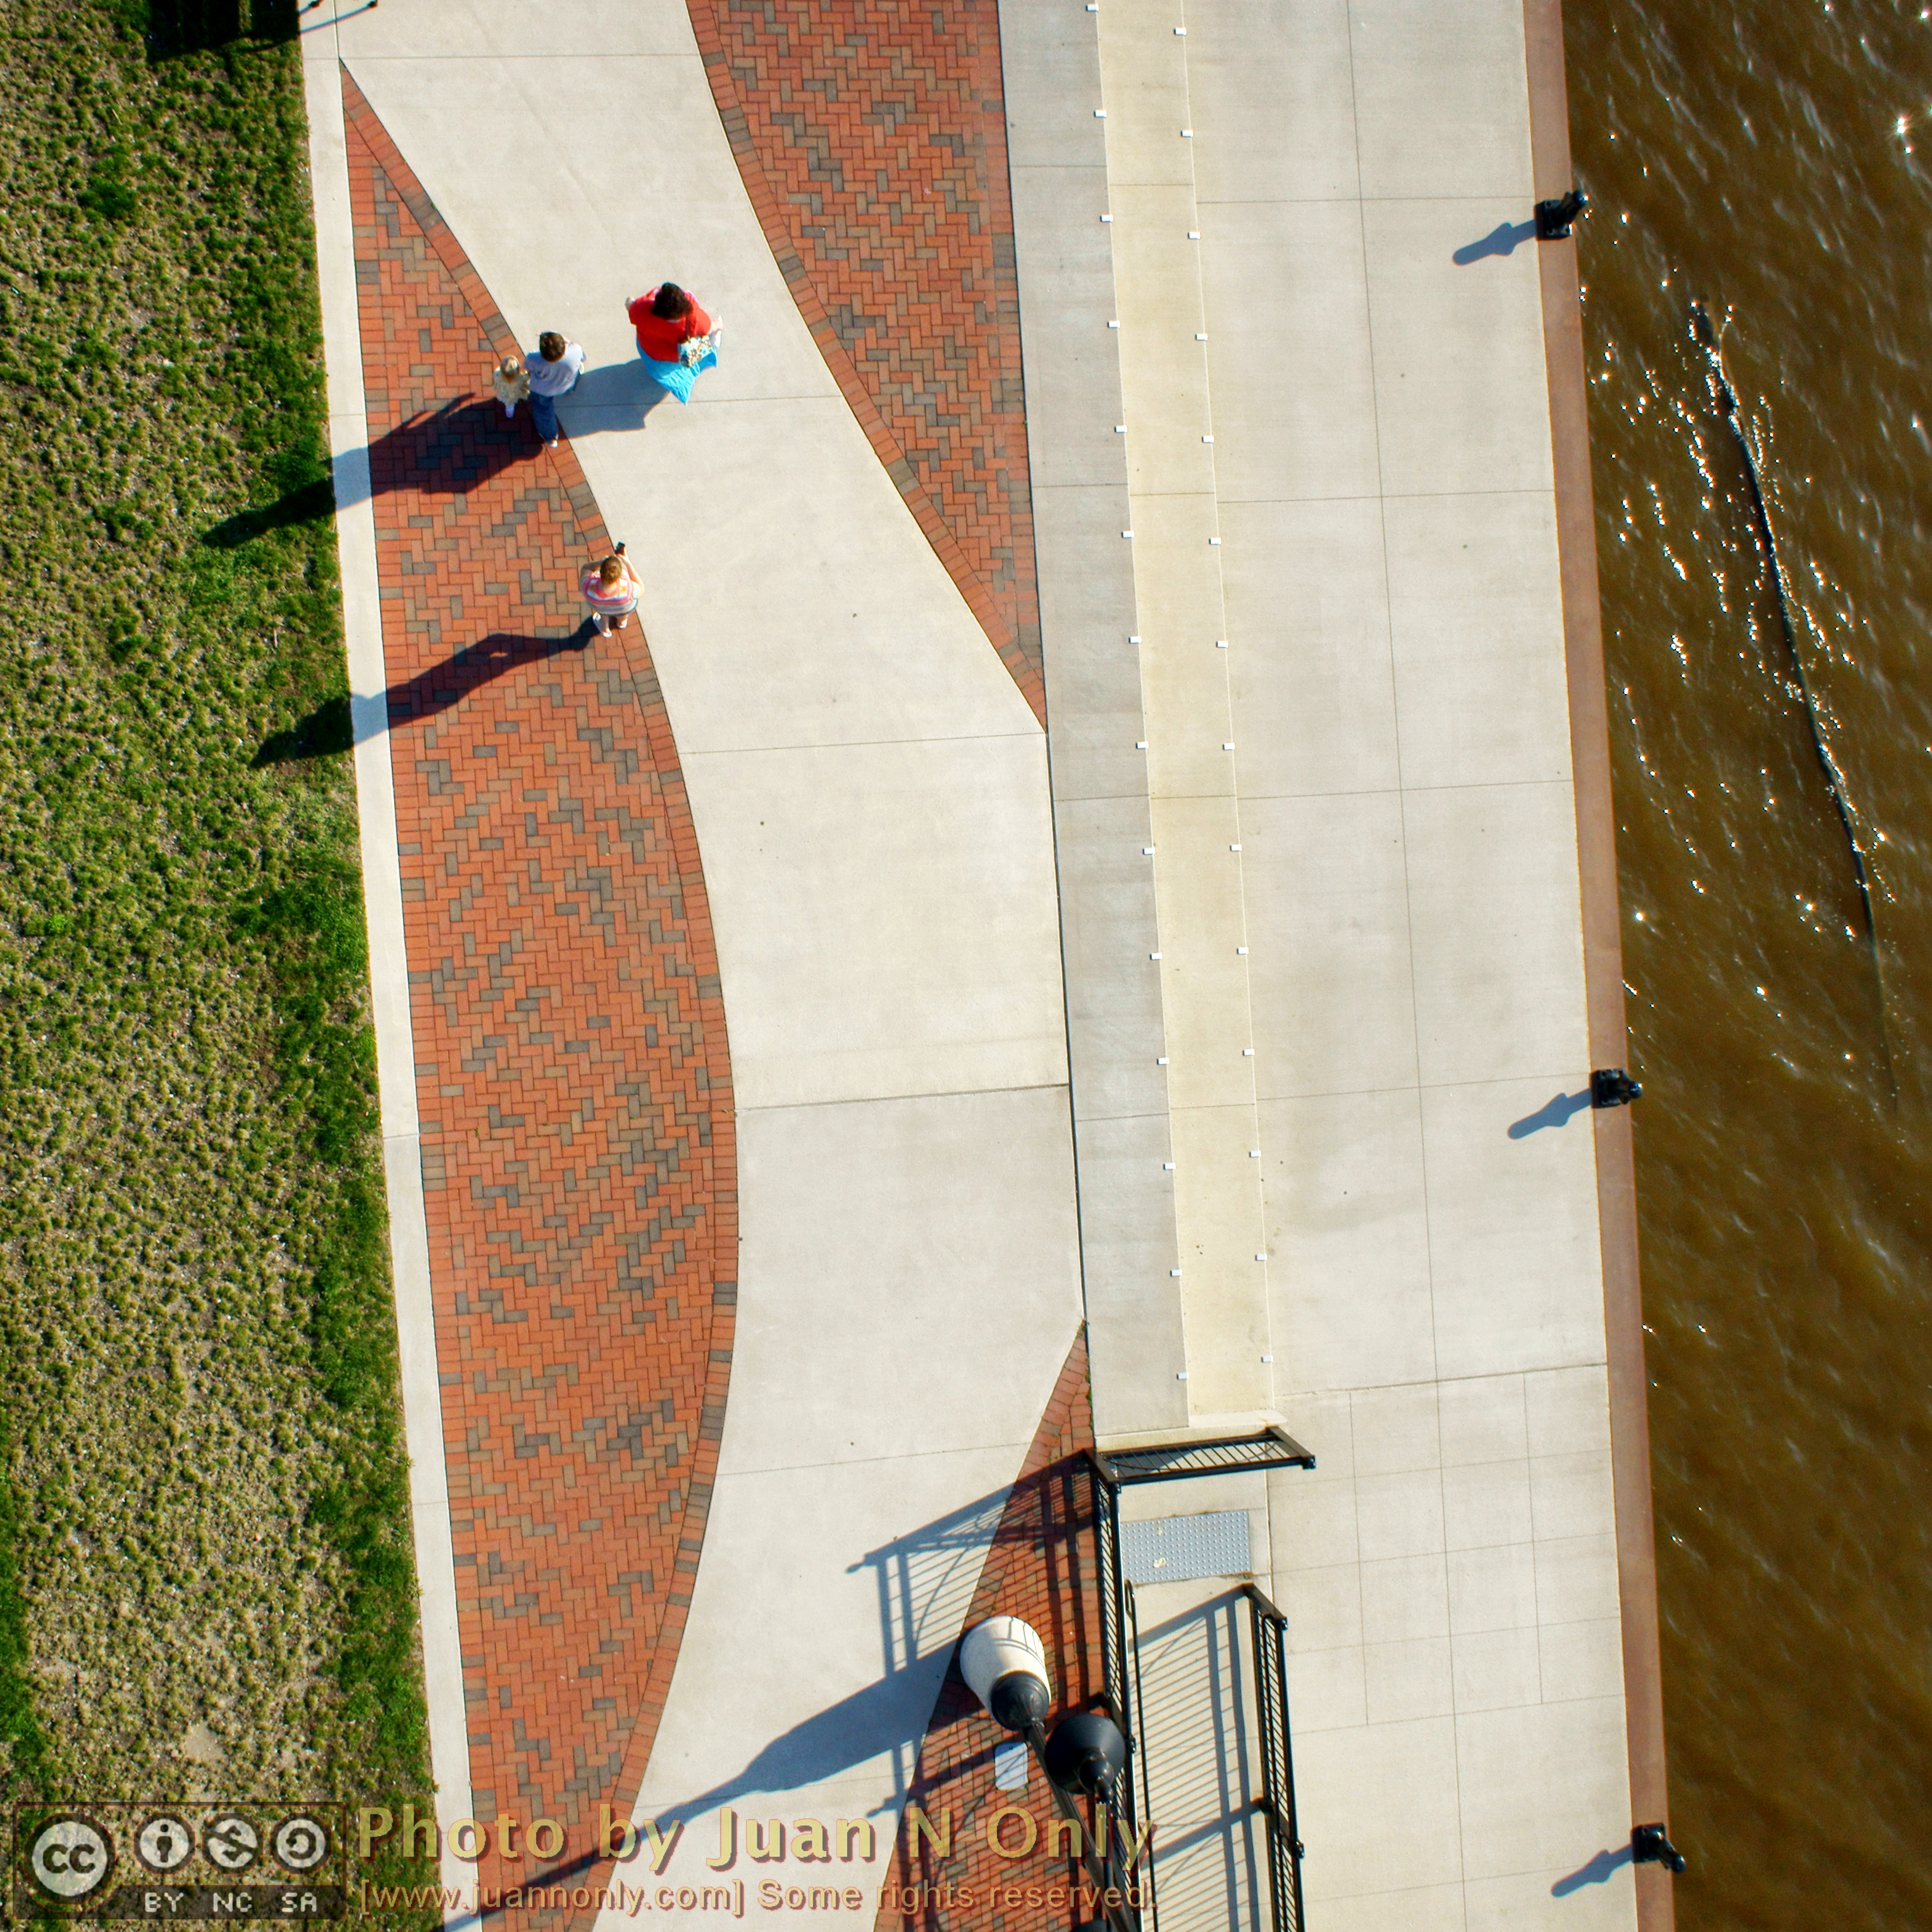 Michigan bay county auburn - People Usa River Spring Outdoor Michigan May Riverfront Kap Straightdown Aerialphotography Kiteaerialphotography Baycity Saginawriver 2013 Criticismwelcome